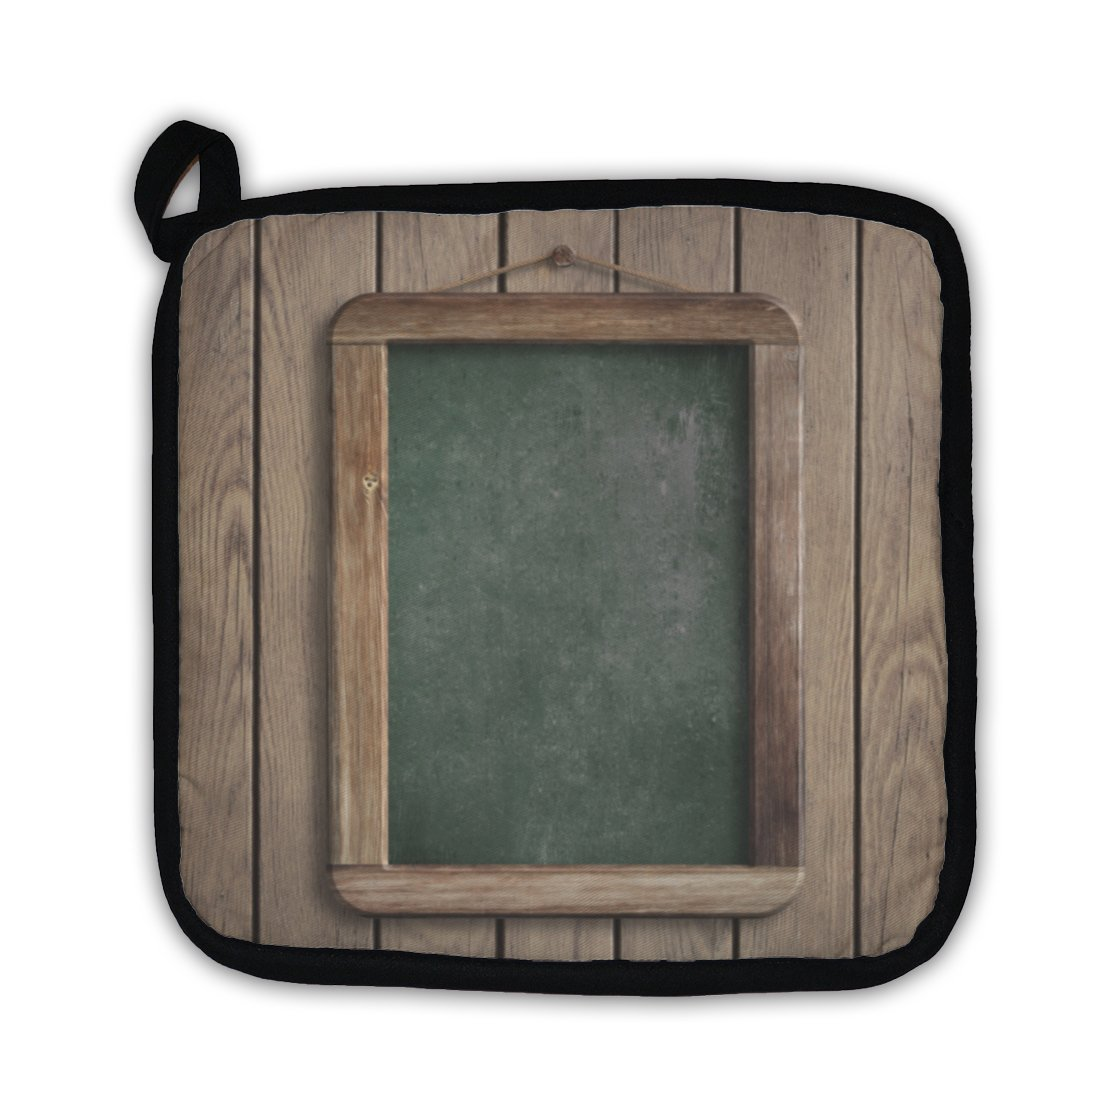 Gear New Aged Menu Blackboard Hanging on Wooden Wall Pot Holder